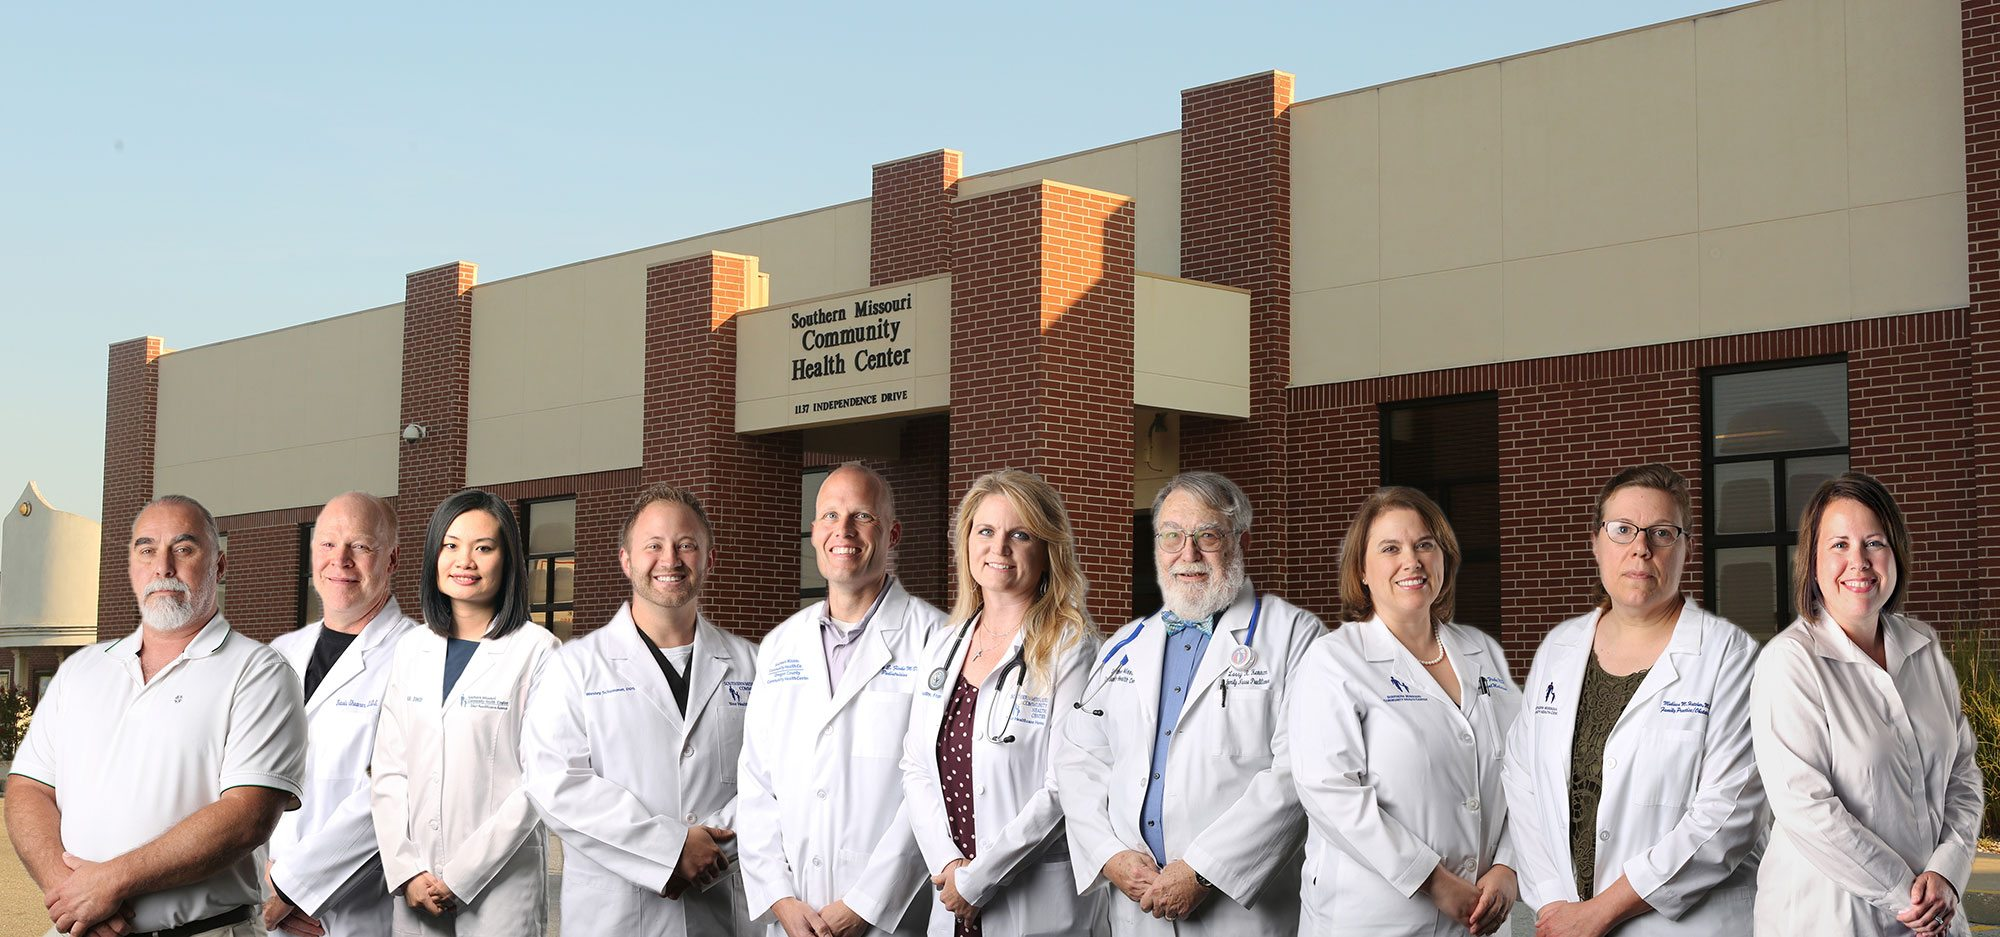 Southern Missouri Community Health Center Medical Professionals